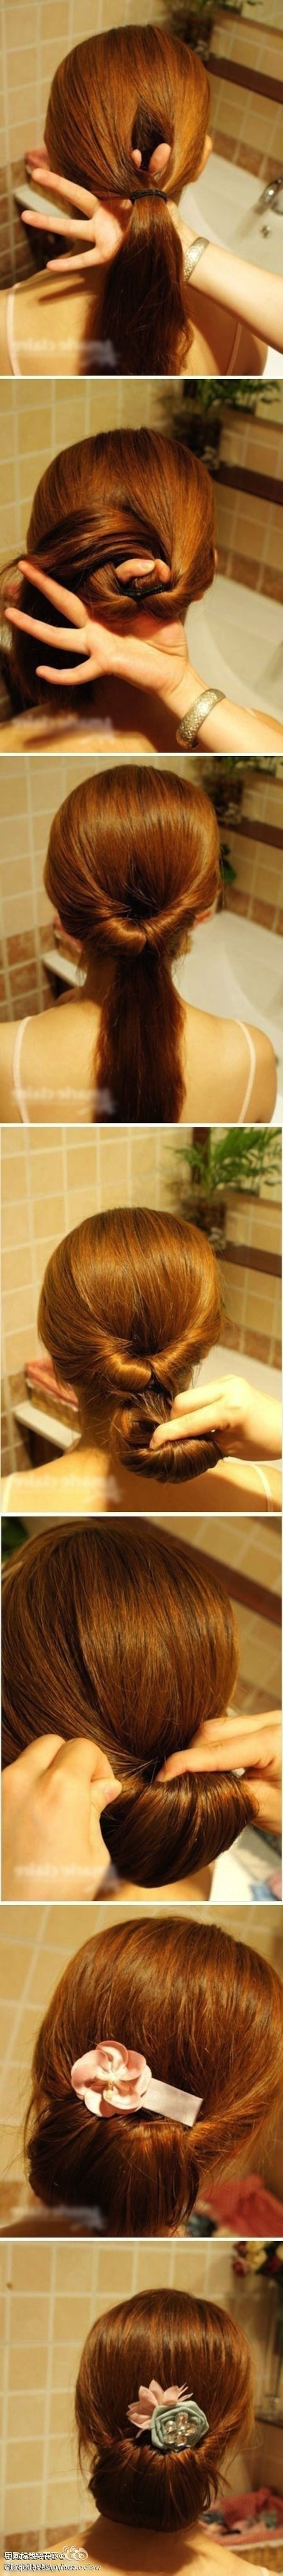 72 Best Haare Images On Pinterest | Hairstyle Ideas, Coiffure Facile Pertaining To Quick Easy Updos For Long Thick Hair (Gallery 7 of 15)